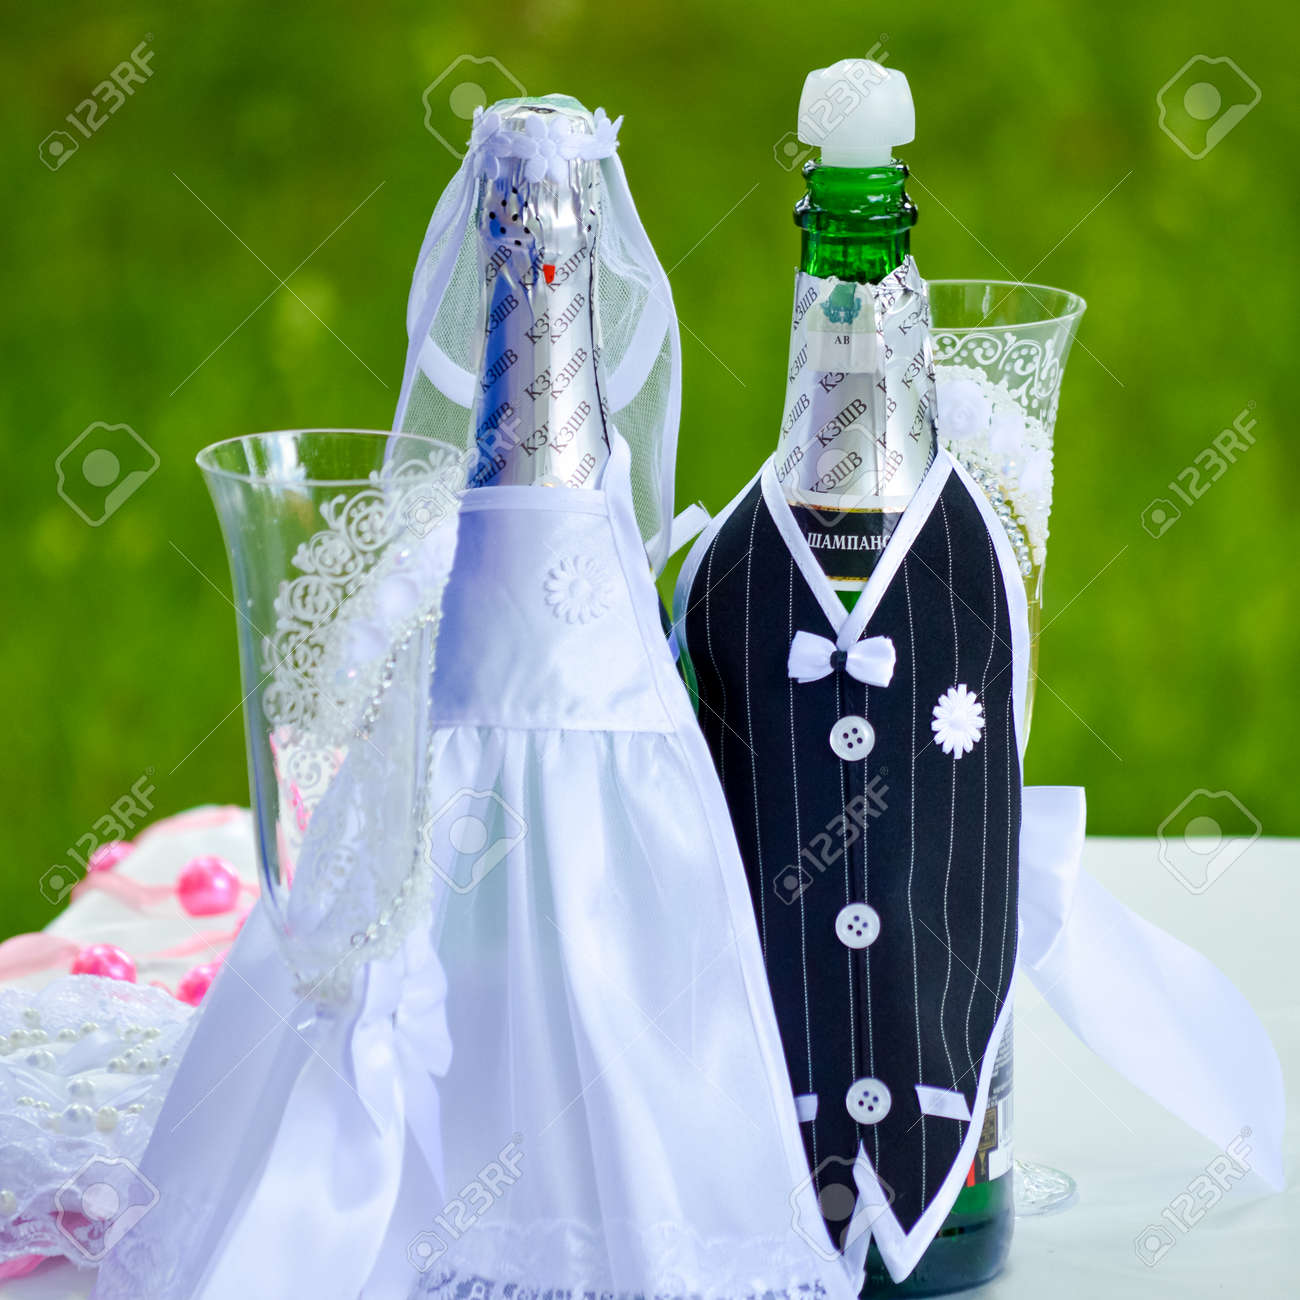 Wedding Ceremony Details Of Decorated Wine Bottles Stock Photo